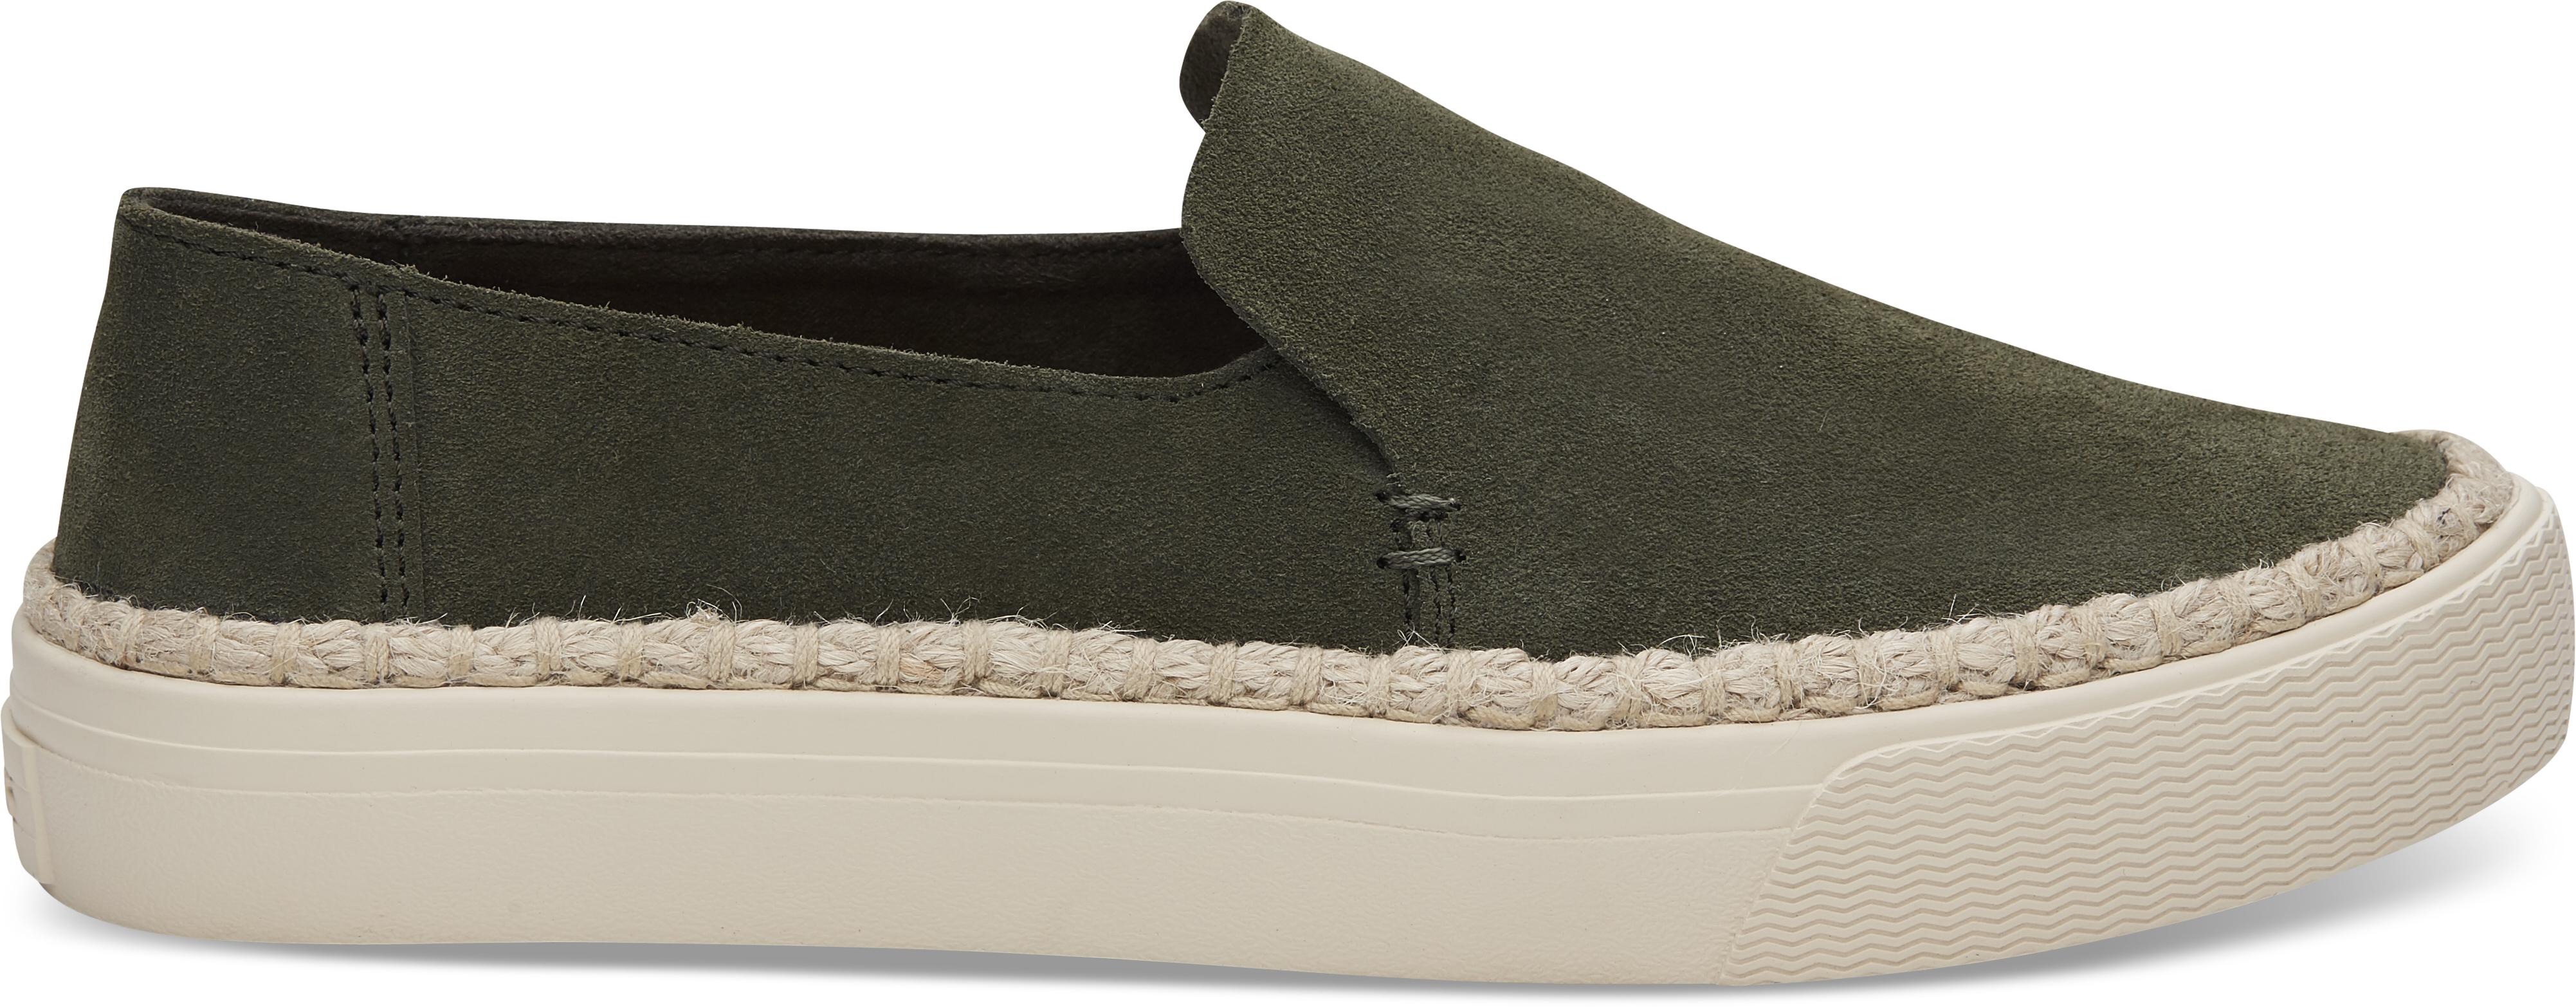 Pine Suede/Rope - 5,5/36